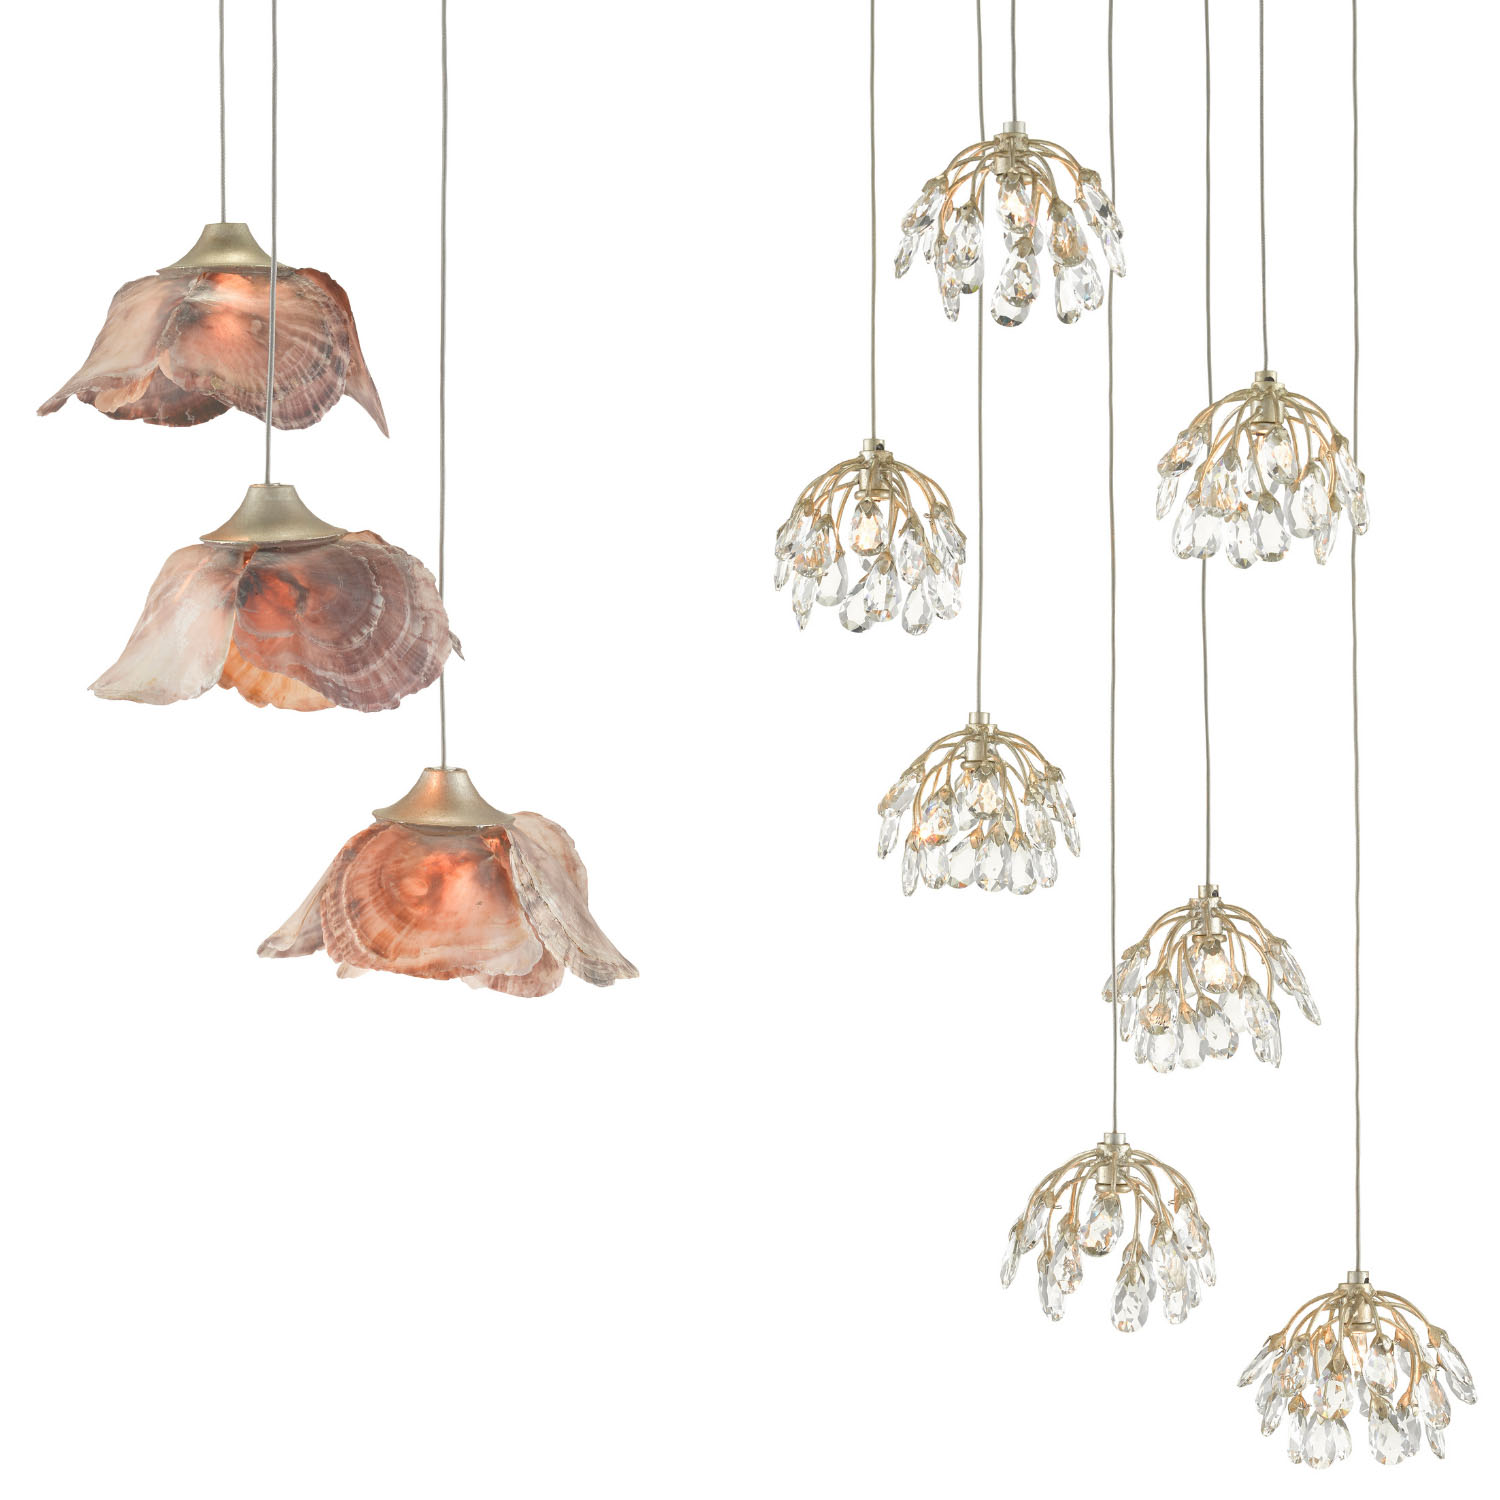 shade design options for the Currey and Company Multi Drop Pendant Collection